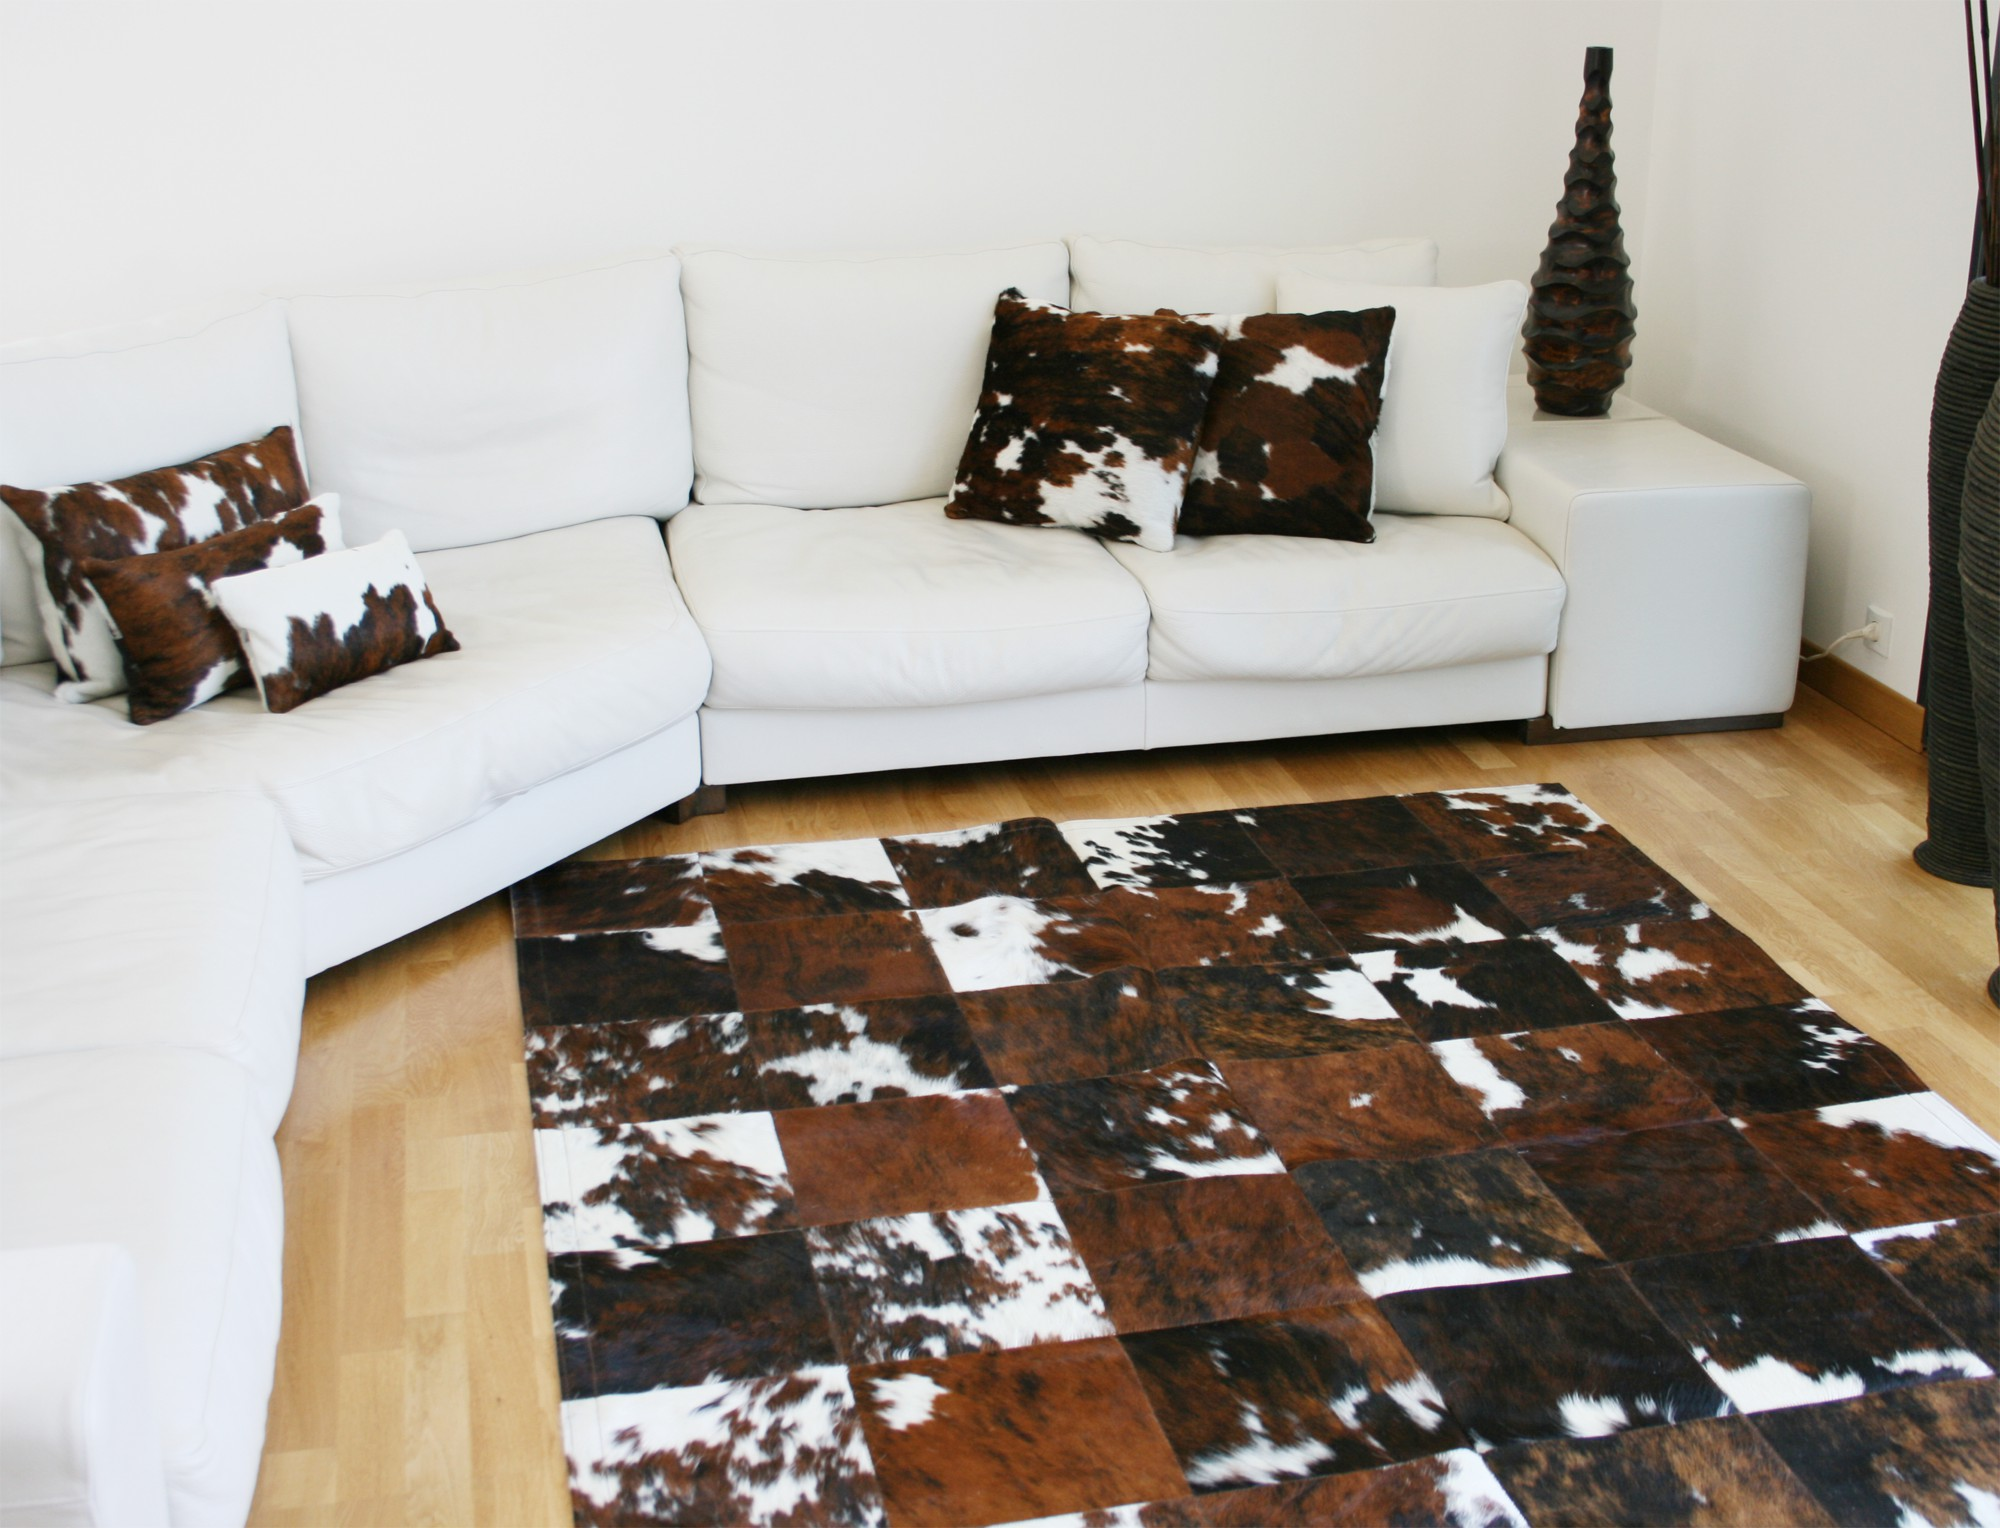 tapis patchwork en peau de vache normande. Black Bedroom Furniture Sets. Home Design Ideas